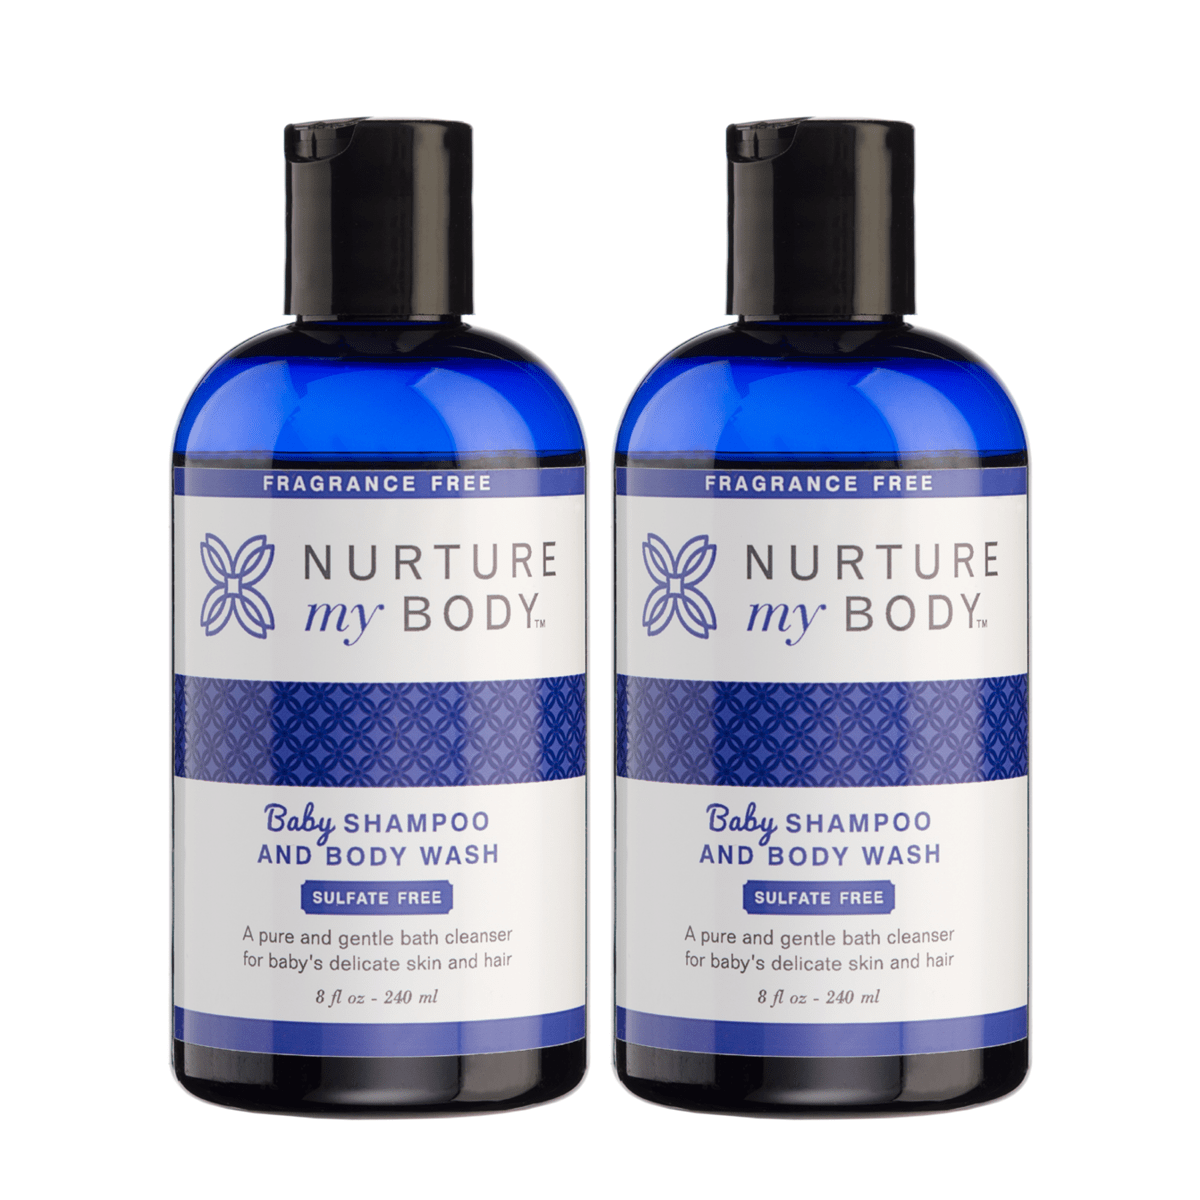 Nuture My Body Gluten Free - Nurture My Body